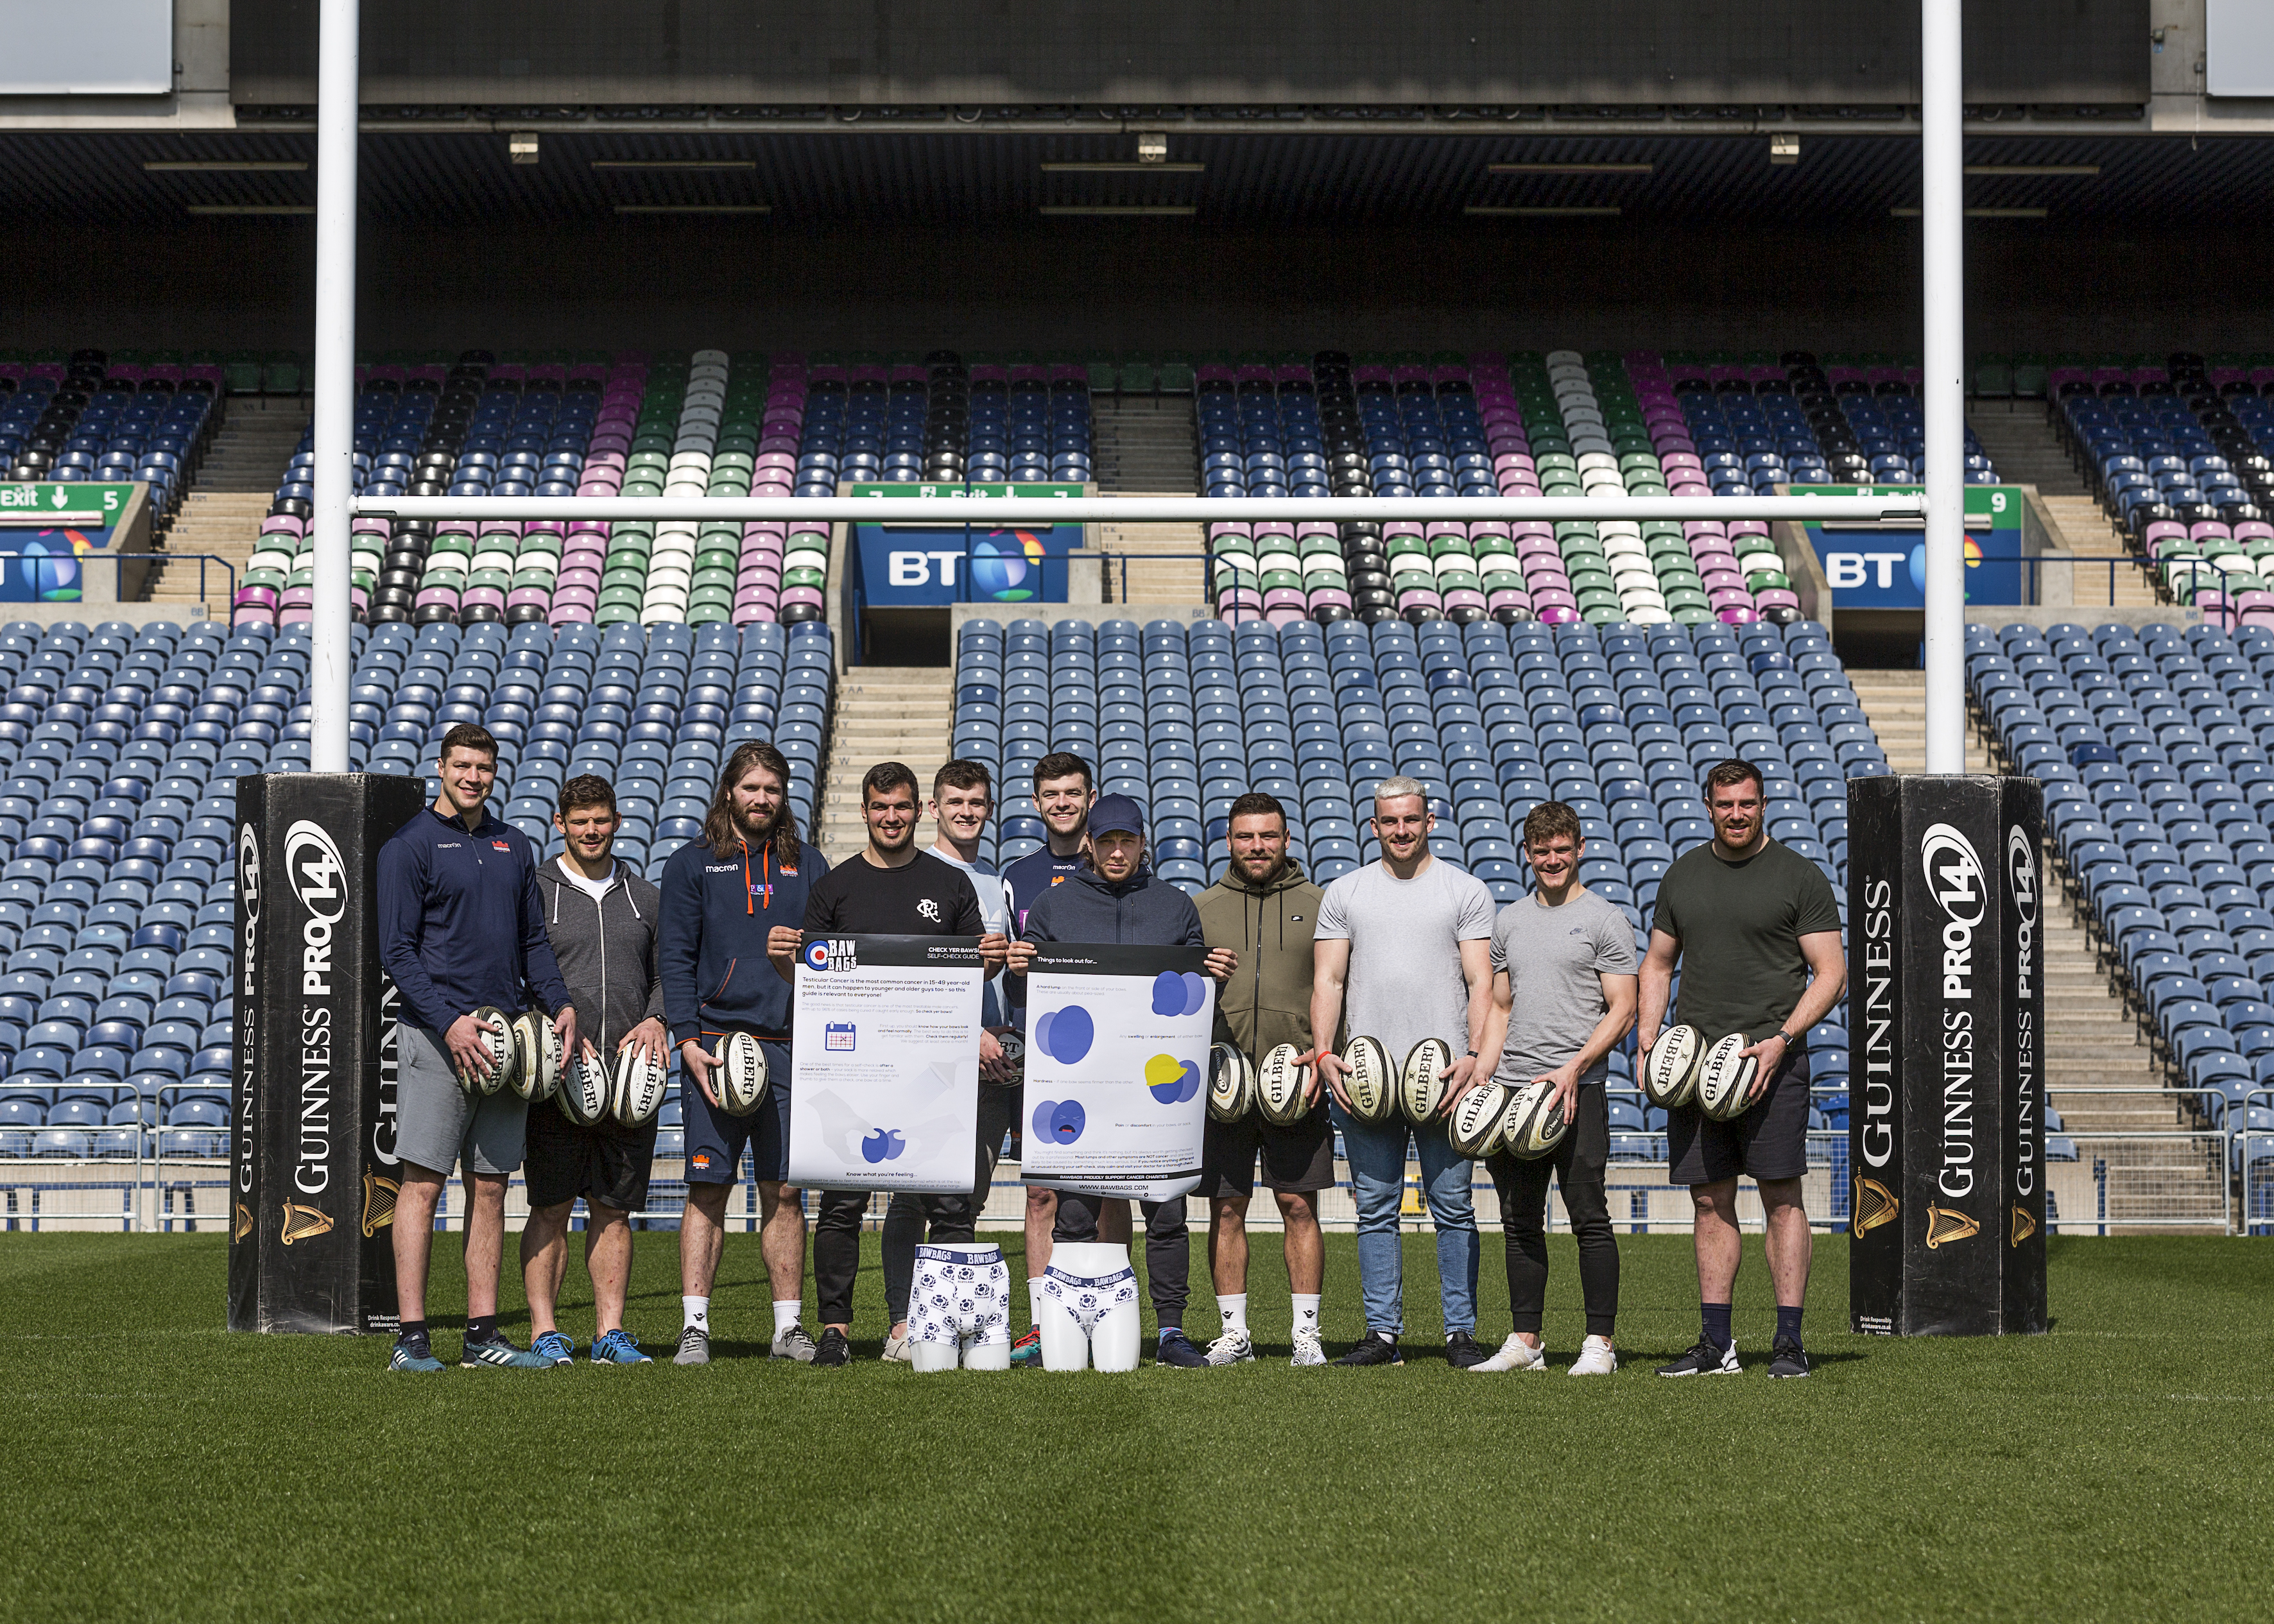 Scottish rugby team at Murrayfield.